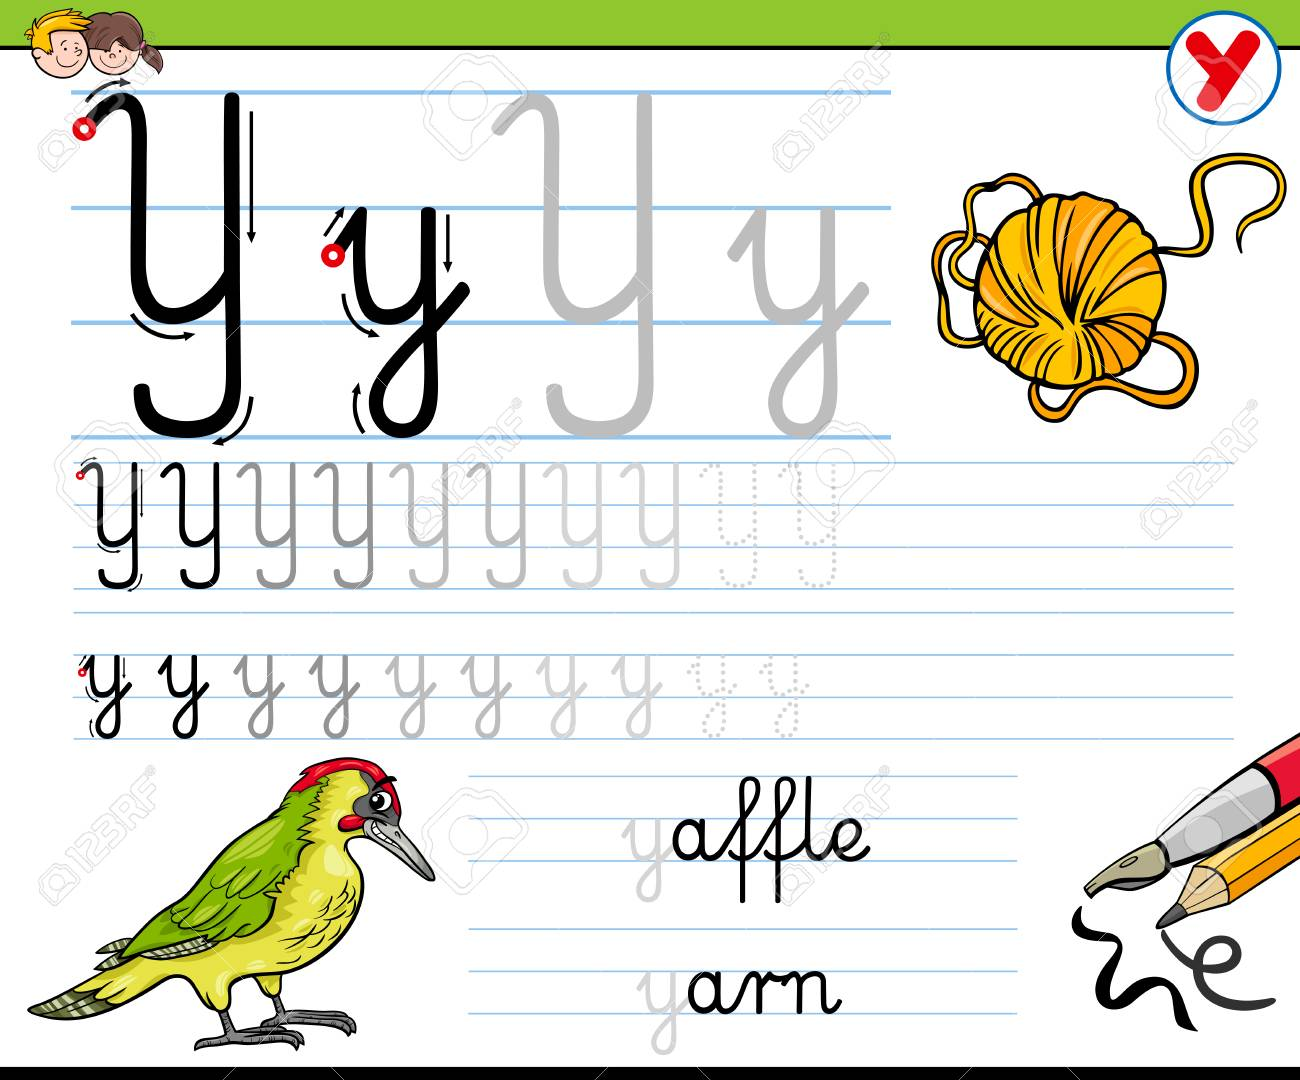 Cartoon Illustration Of Writing Skills Practice With Letter Y